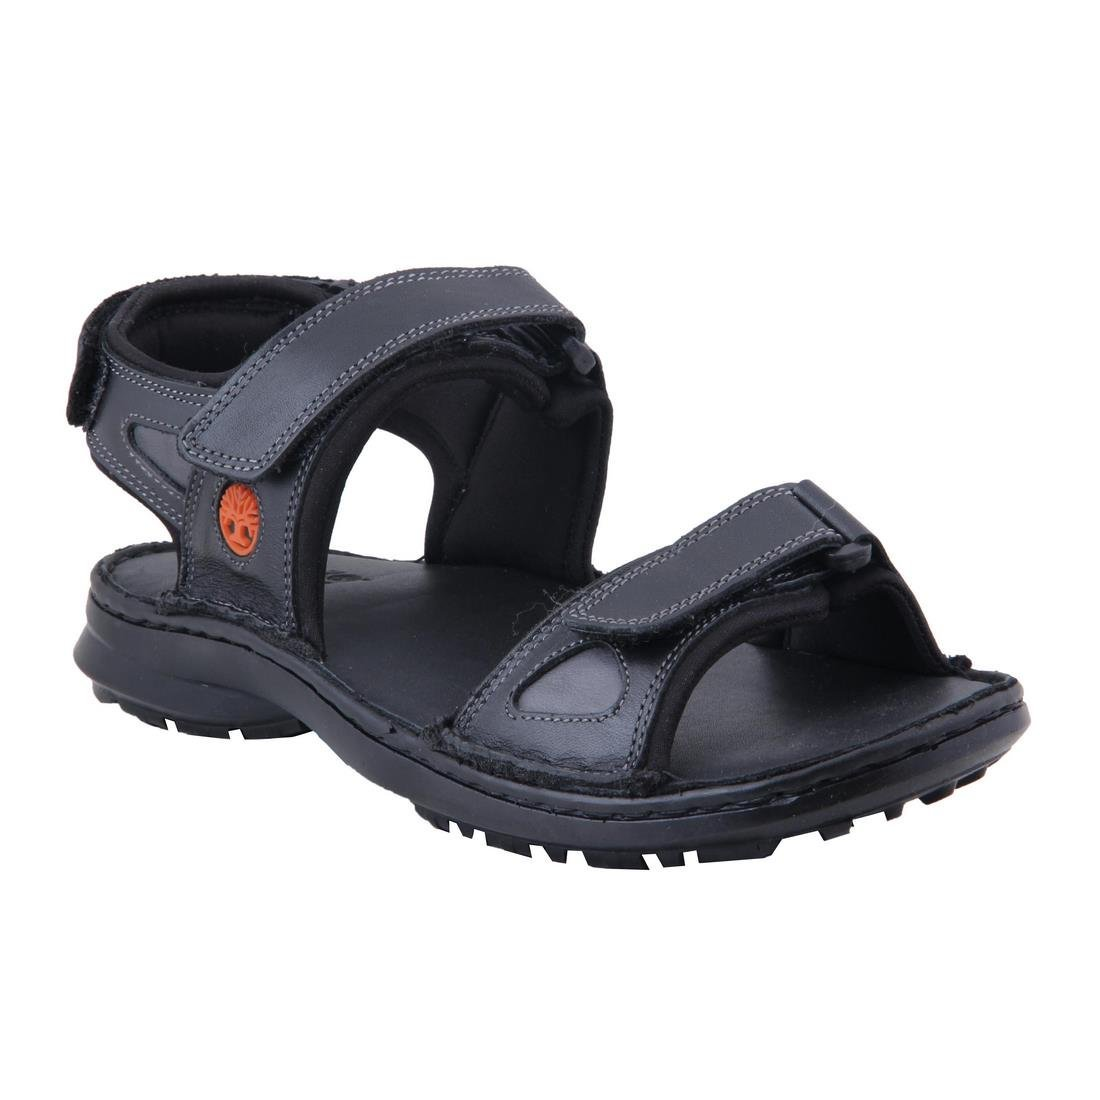 87425cc2ae02 Ventoland Men s Black Genuine Leather Sandals (GWVLS-0461 45)- 11 UK  Buy  Online at Low Prices in India - Amazon.in